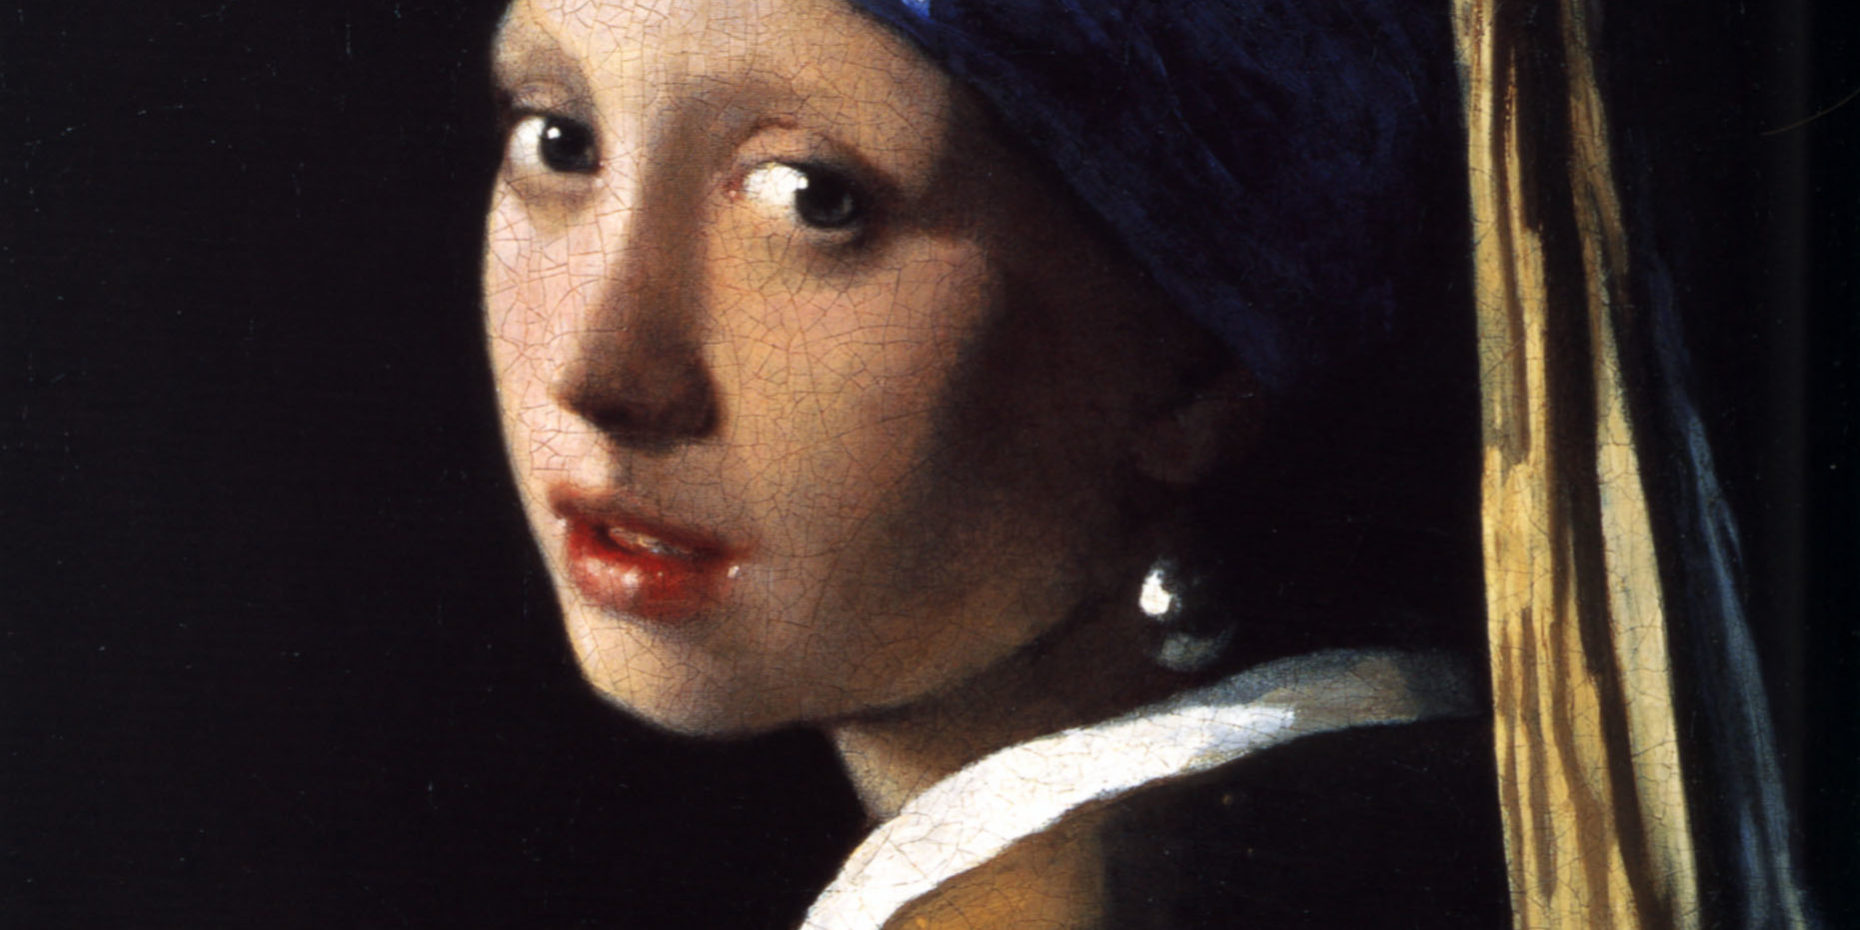 Girl with a Pearl Earring Johannes Vermeer 1665 #003